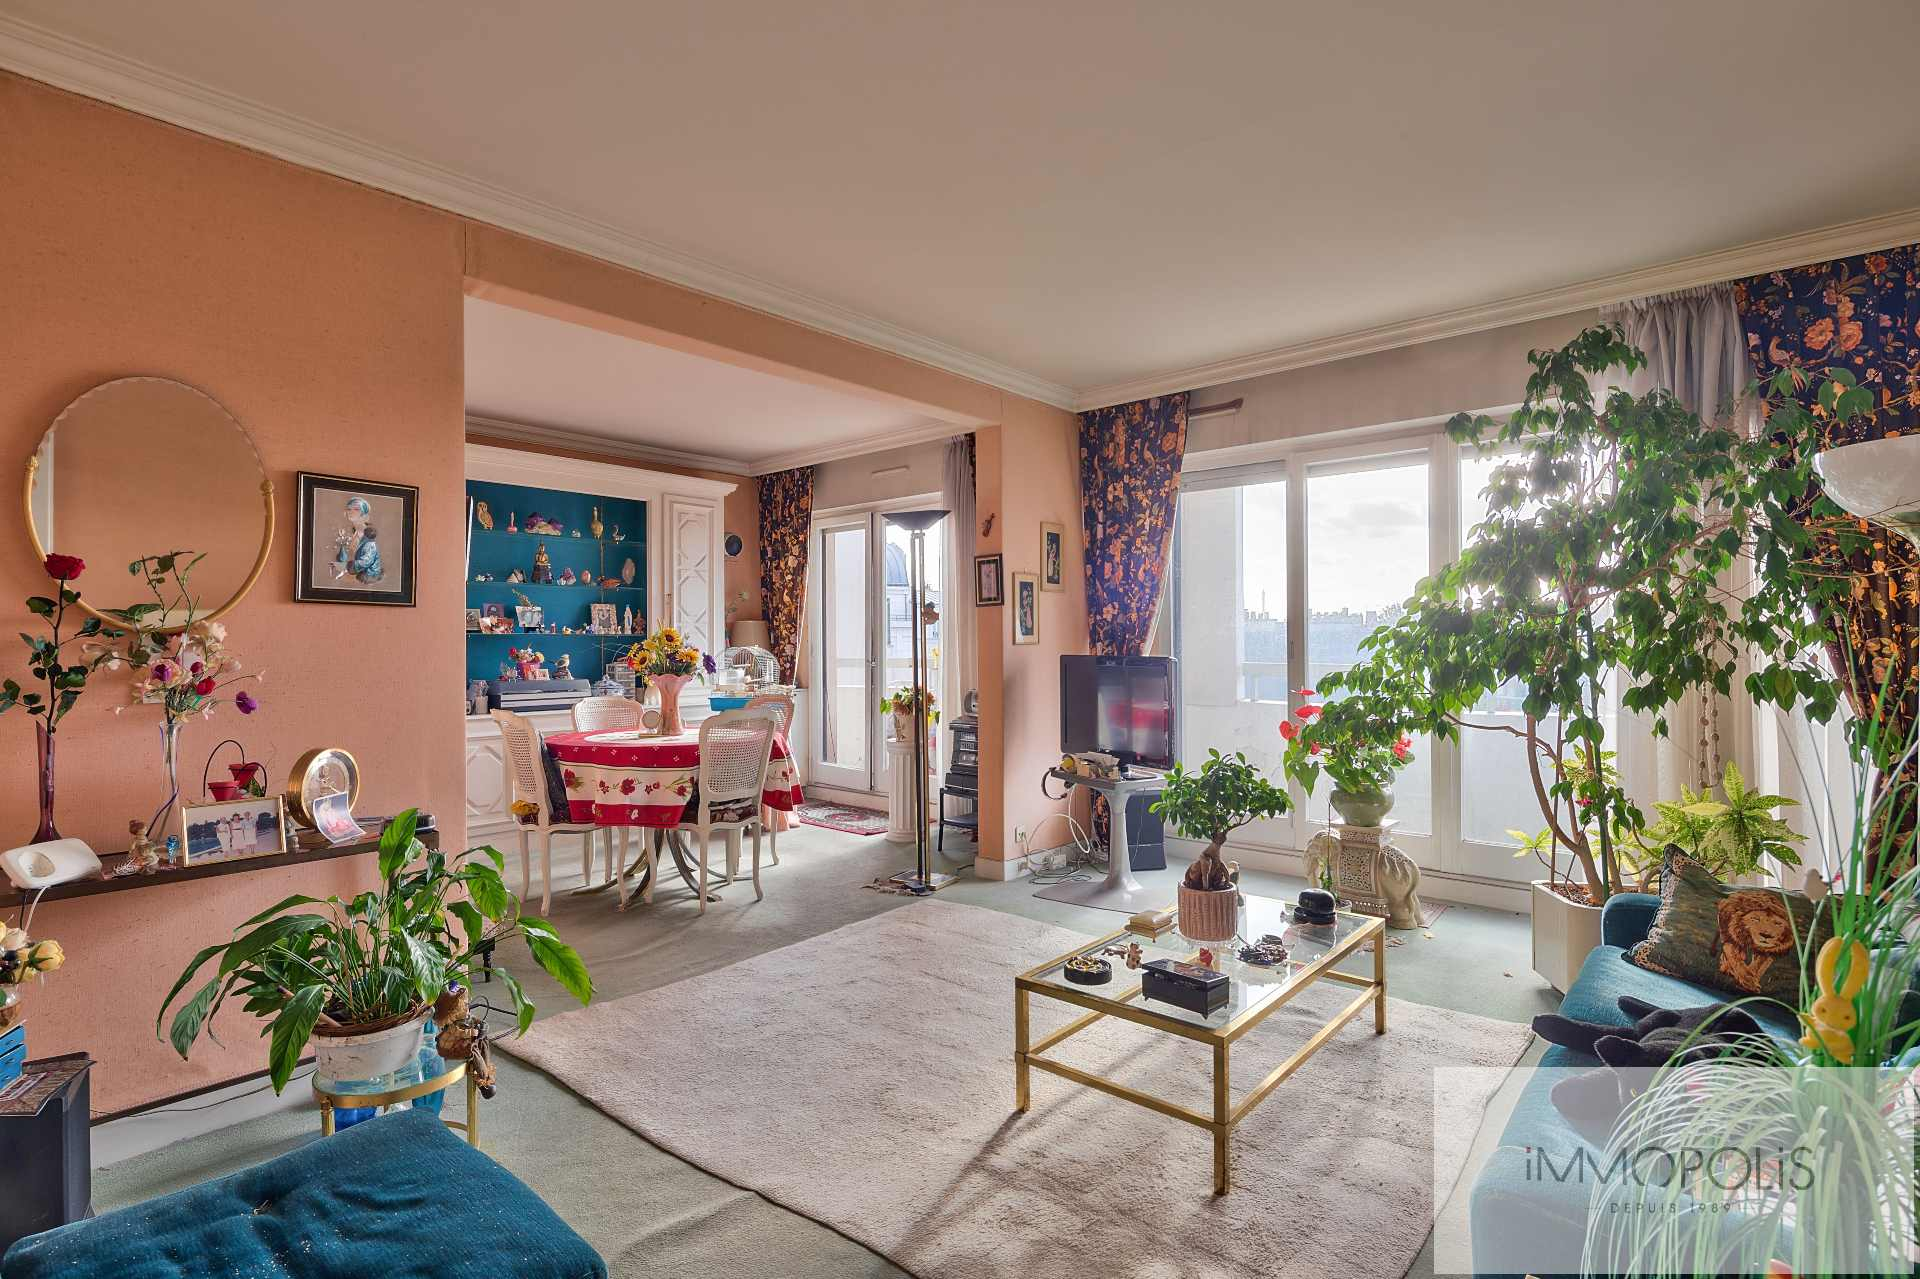 4 rooms with balcony terrace and open view on gardens and the Eiffel Tower: sold occupied by usufructuary of 90 years 1